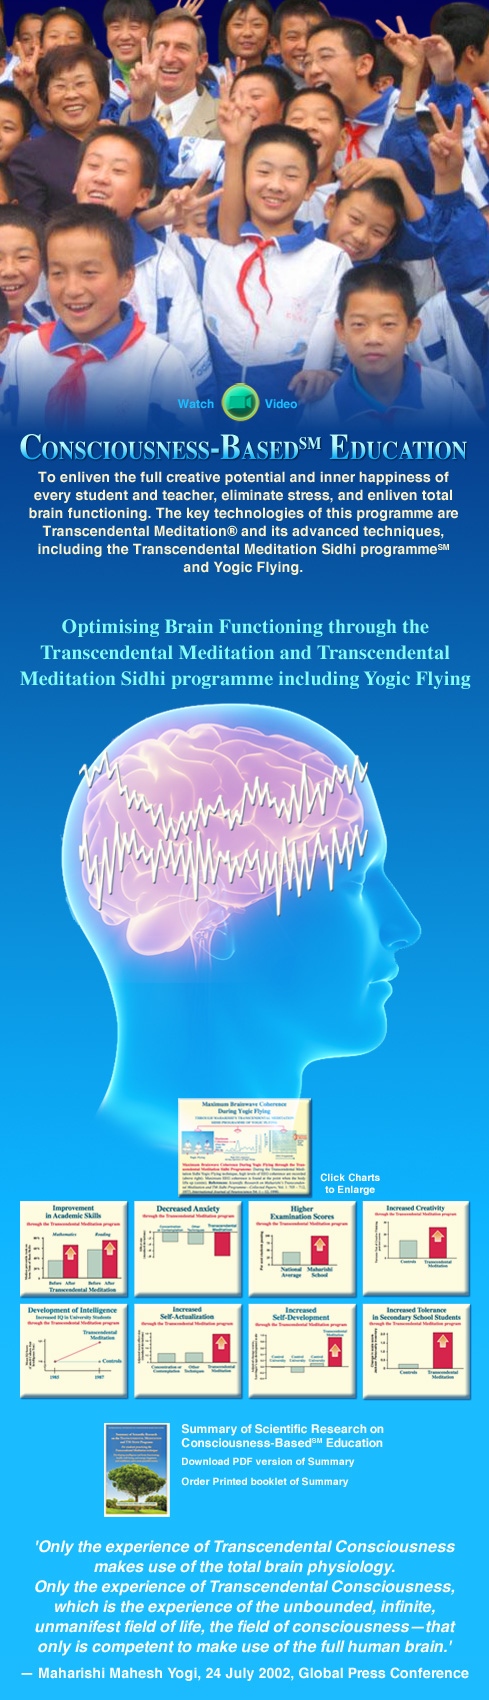 Consciousness Based Education SM: To enliven the full creative potential and inner happiness of every student and teacher, eliminate stress, and enliven total brain functioning. The key technologies of this programme are Transcendental Meditation and its advanced techniques, including the Transcendental Meditation Sidhi Programme and Yogic Flying.